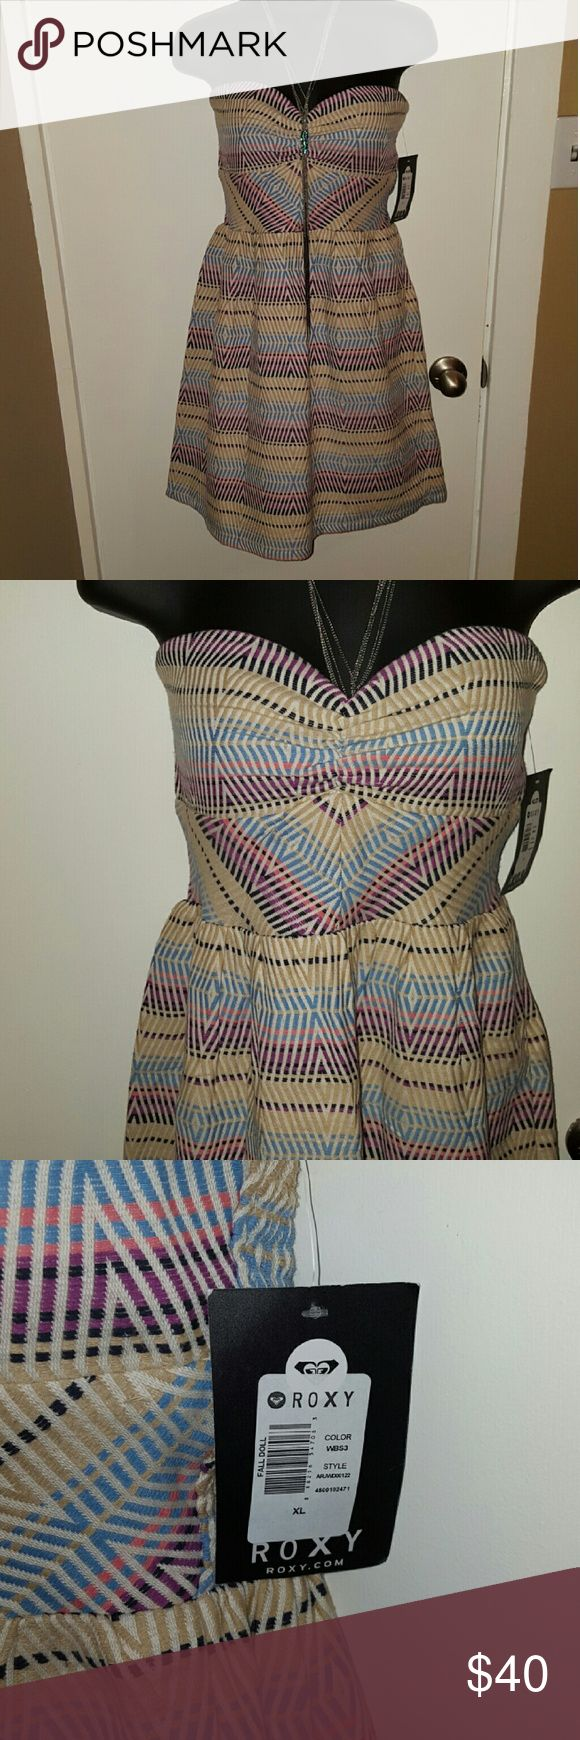 Multicolored striped roxy dress Super cute tube top dress, IN LOVE with the colors. Perfect for summertime. Fits more like a large. Roxy Dresses Mini